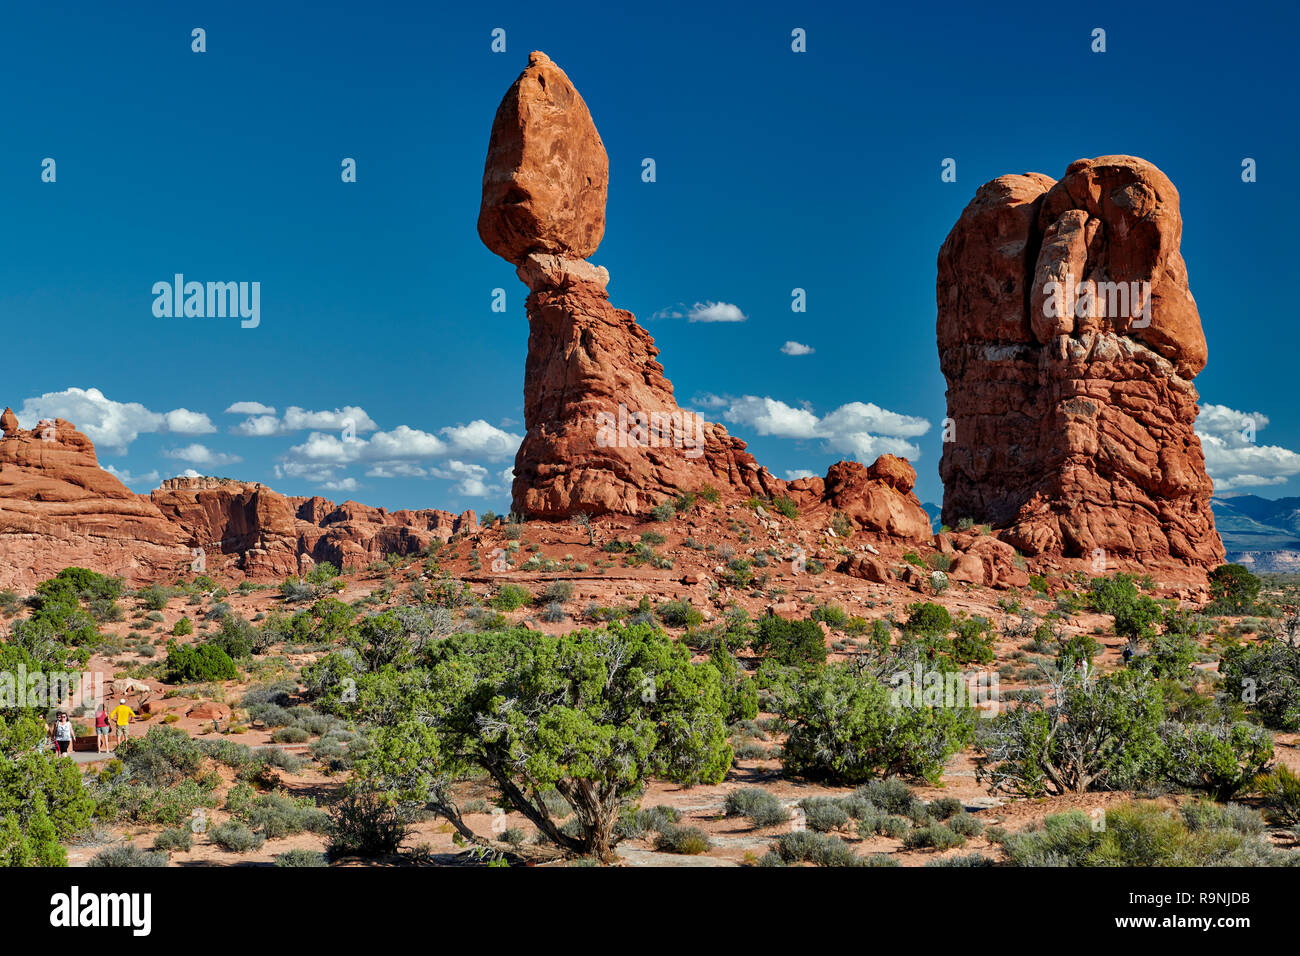 Balanced Rock in Arches National Park, Moab, Utah, USA, North America Stock Photo